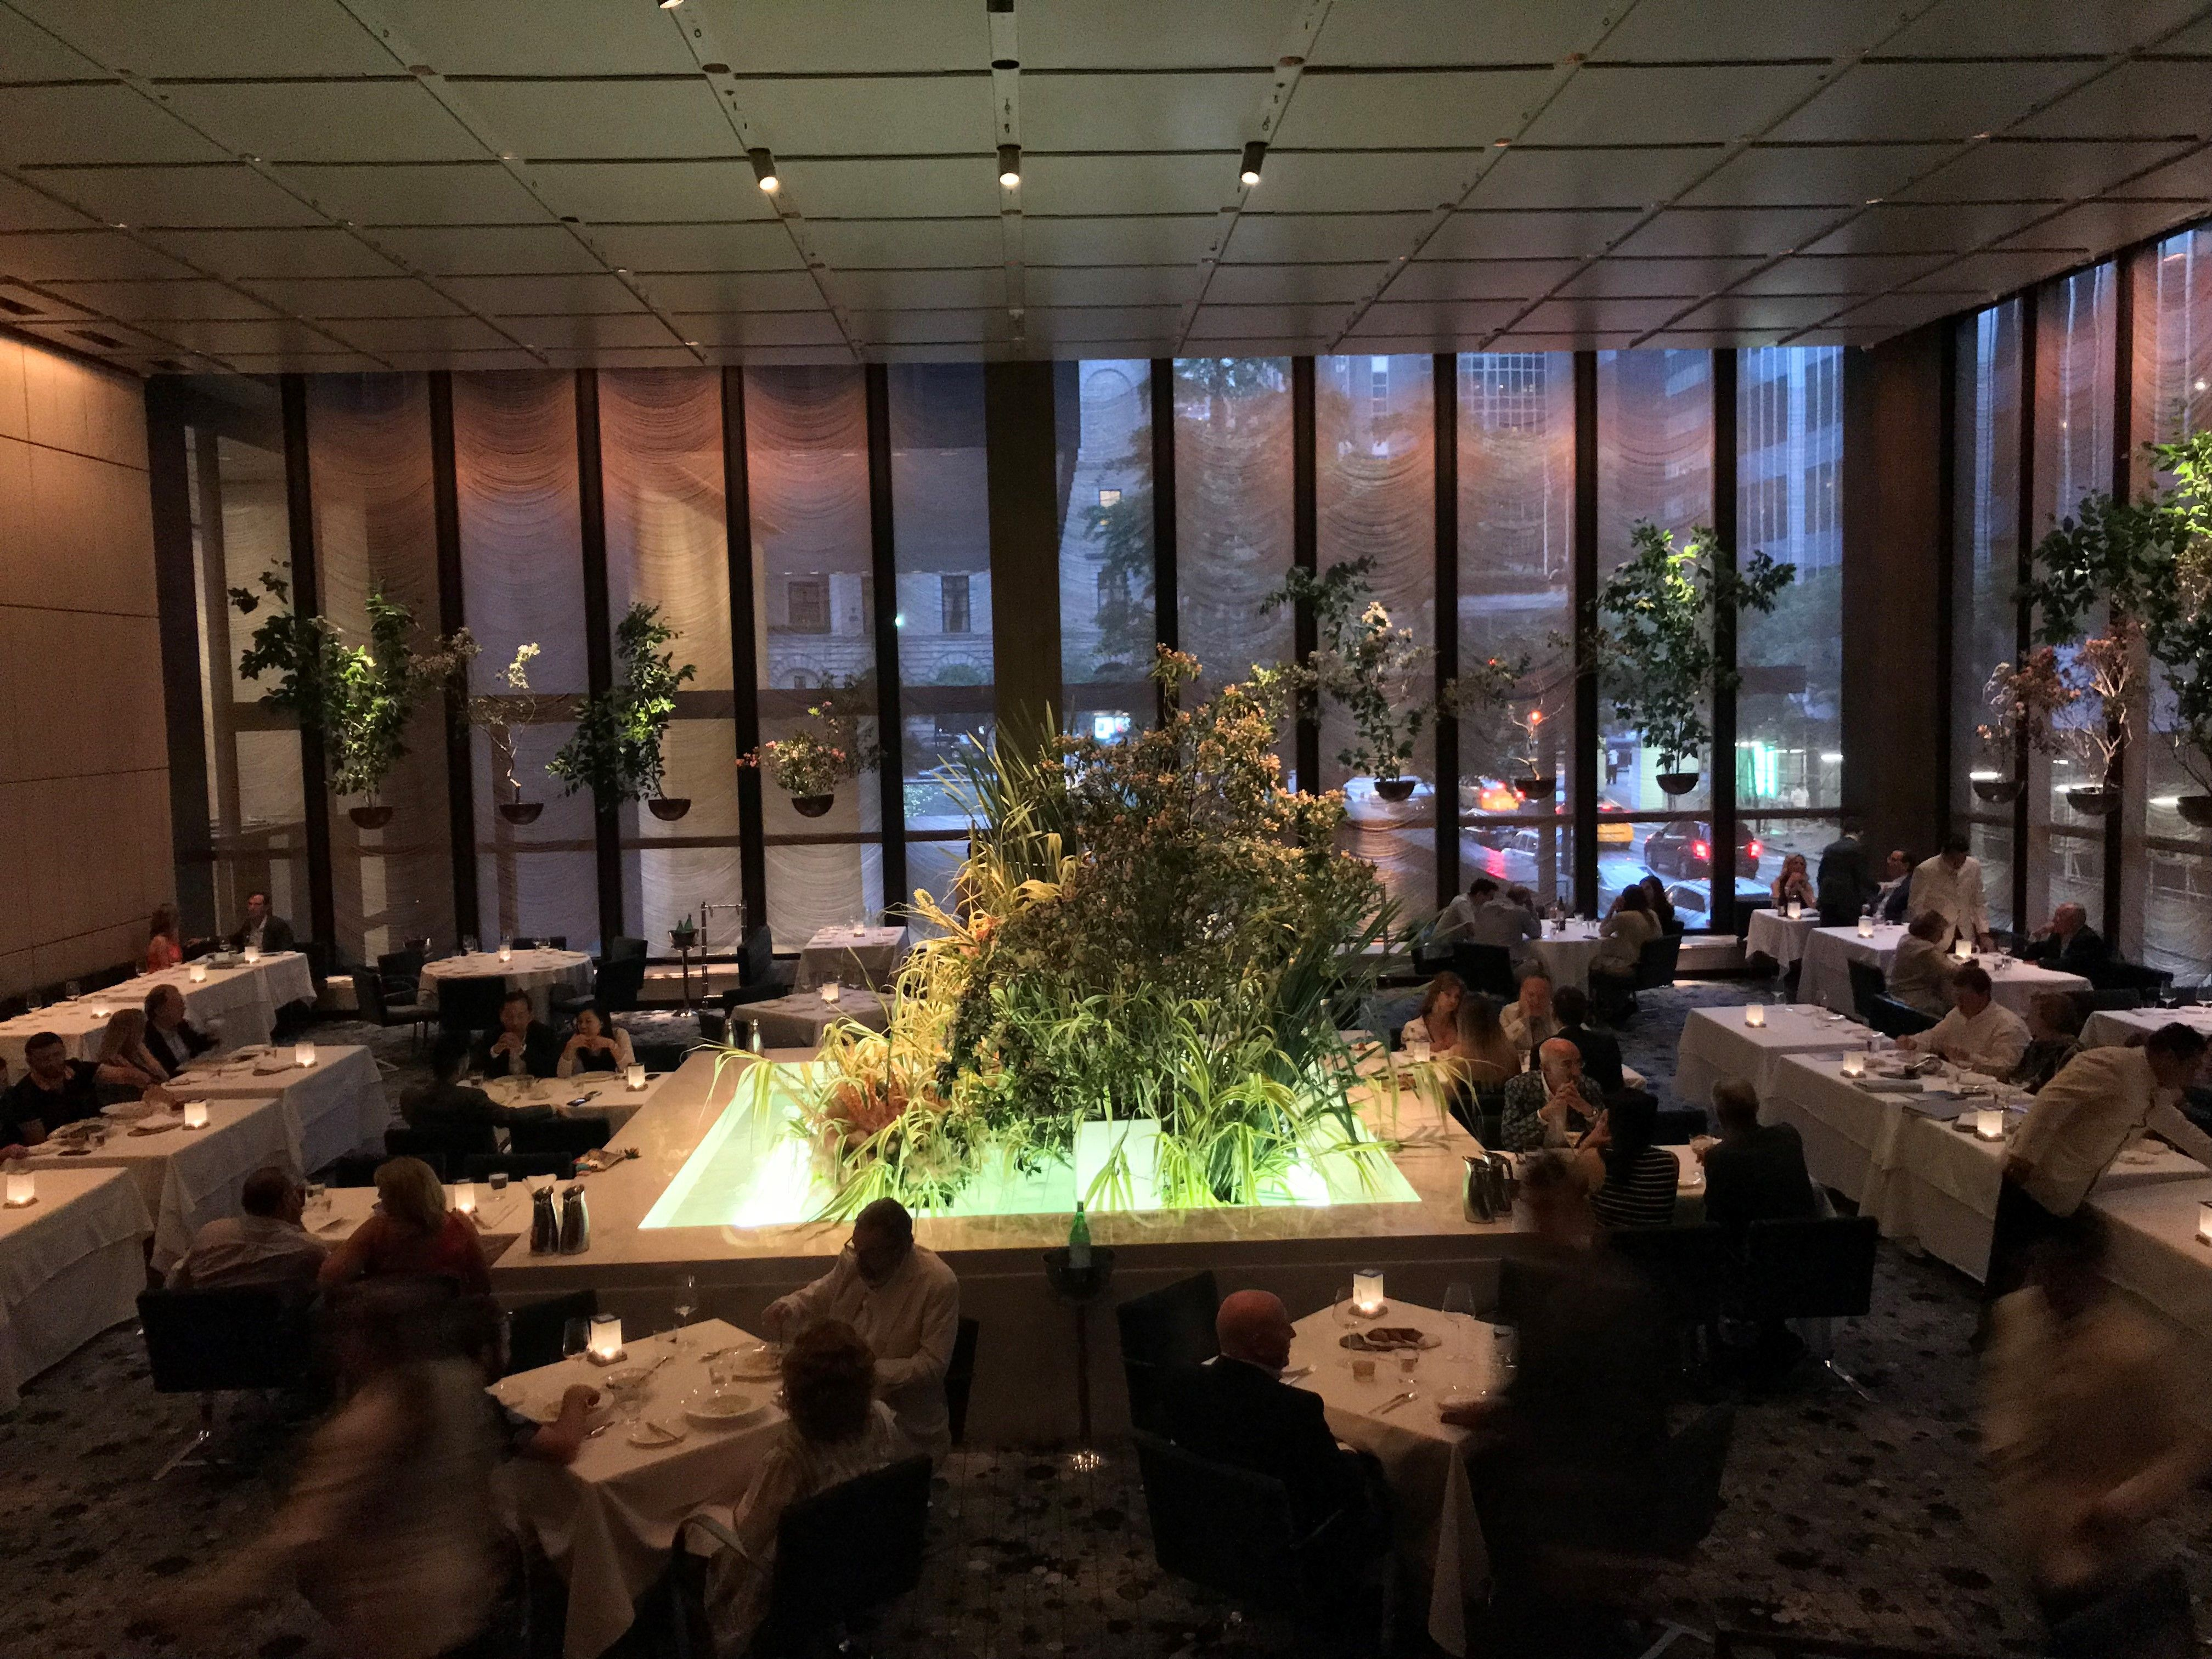 New York Many Of Manhattan S Best Restaurants And Bars Used To Have An Air Drama A Sense Mystery Dash Elegance